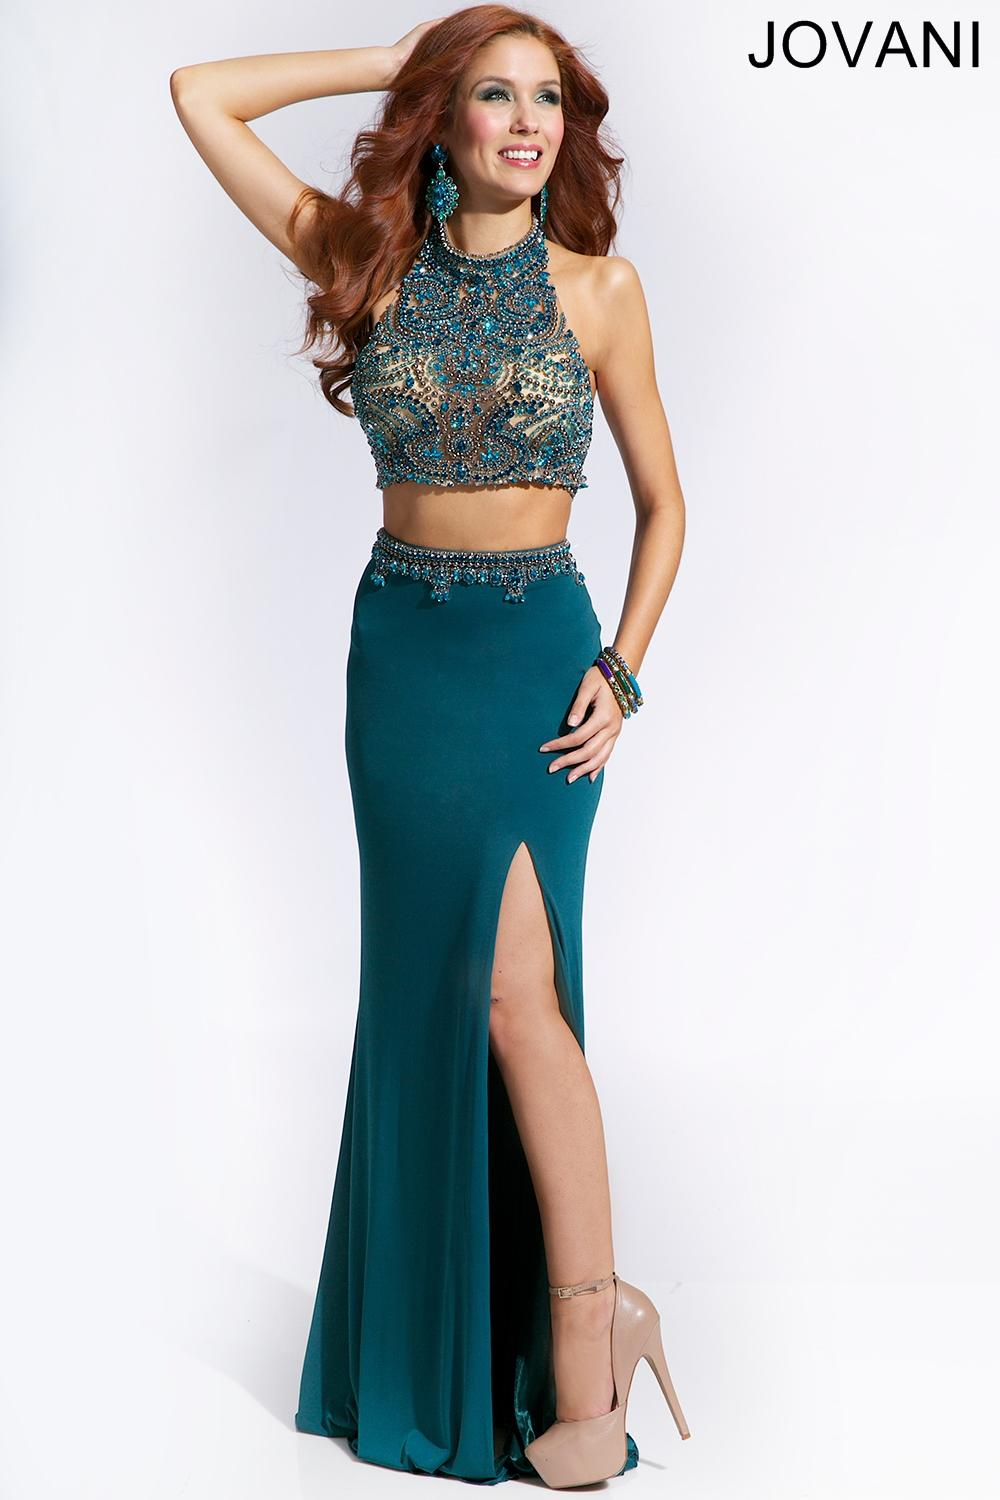 Teal Two Piece Dress 24293 Prom Dresses From Jovani